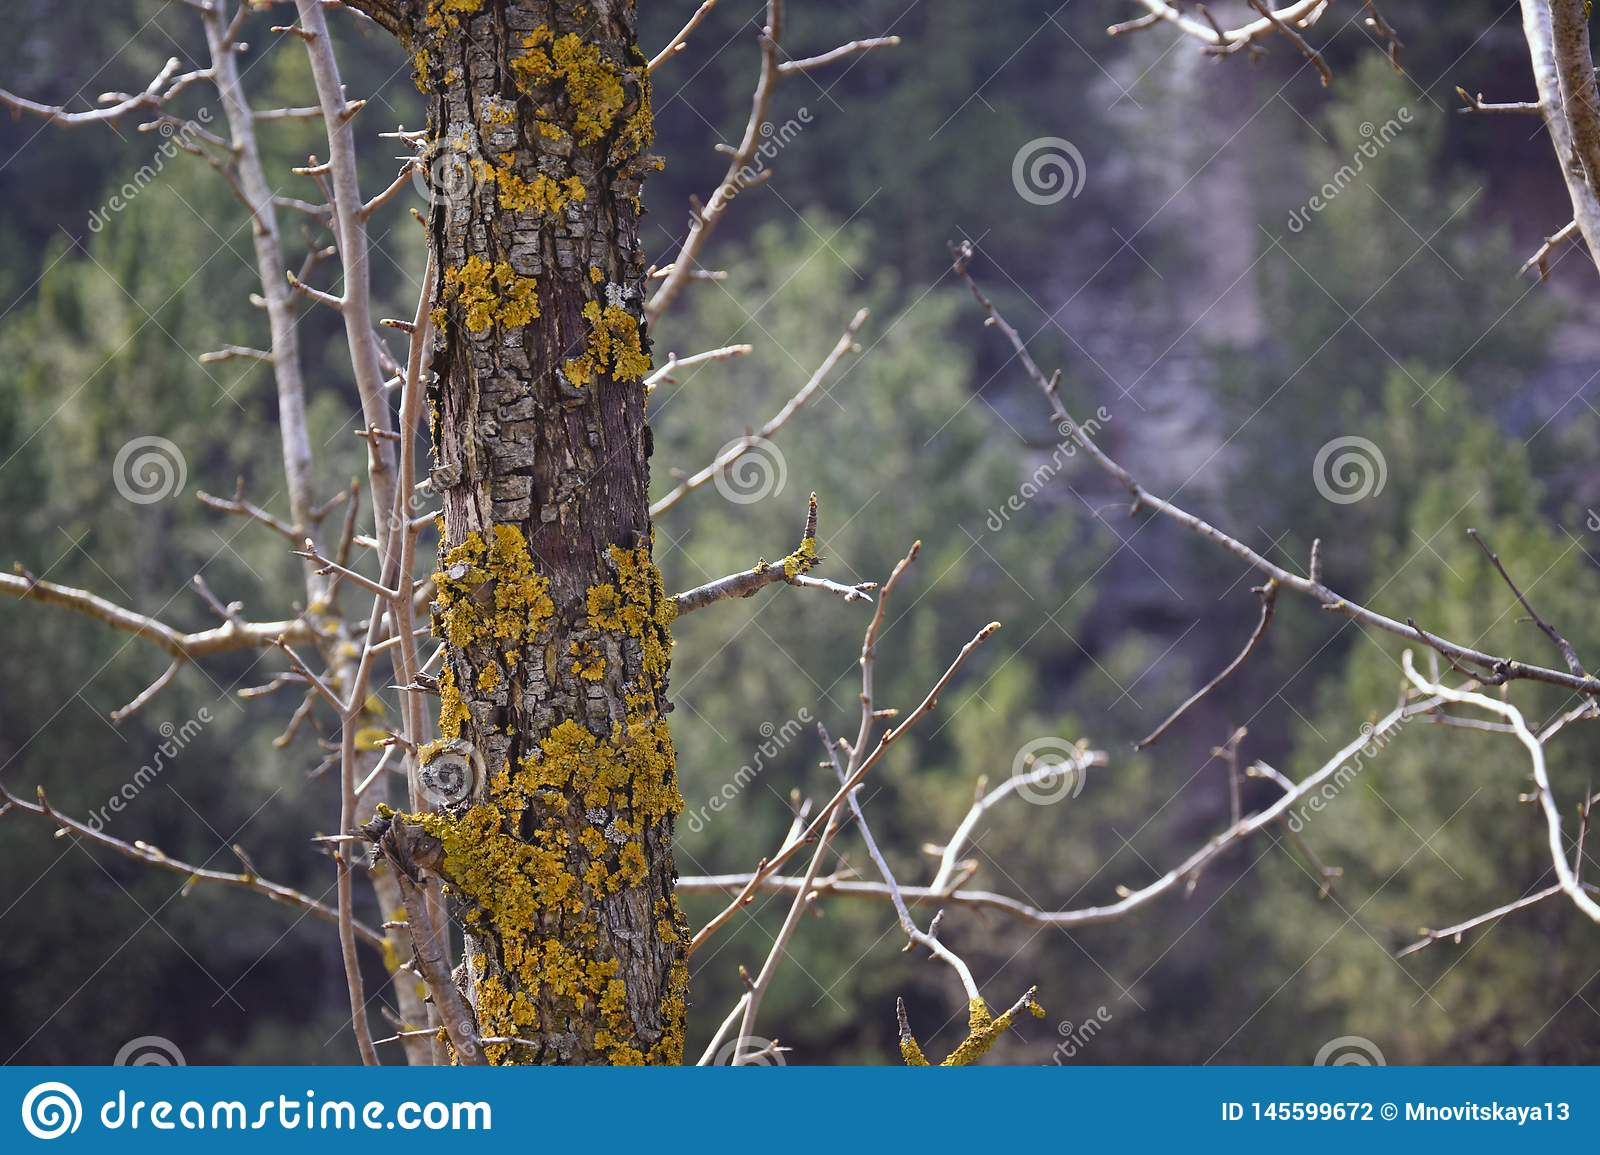 A moss-covered trunk of a wild pear